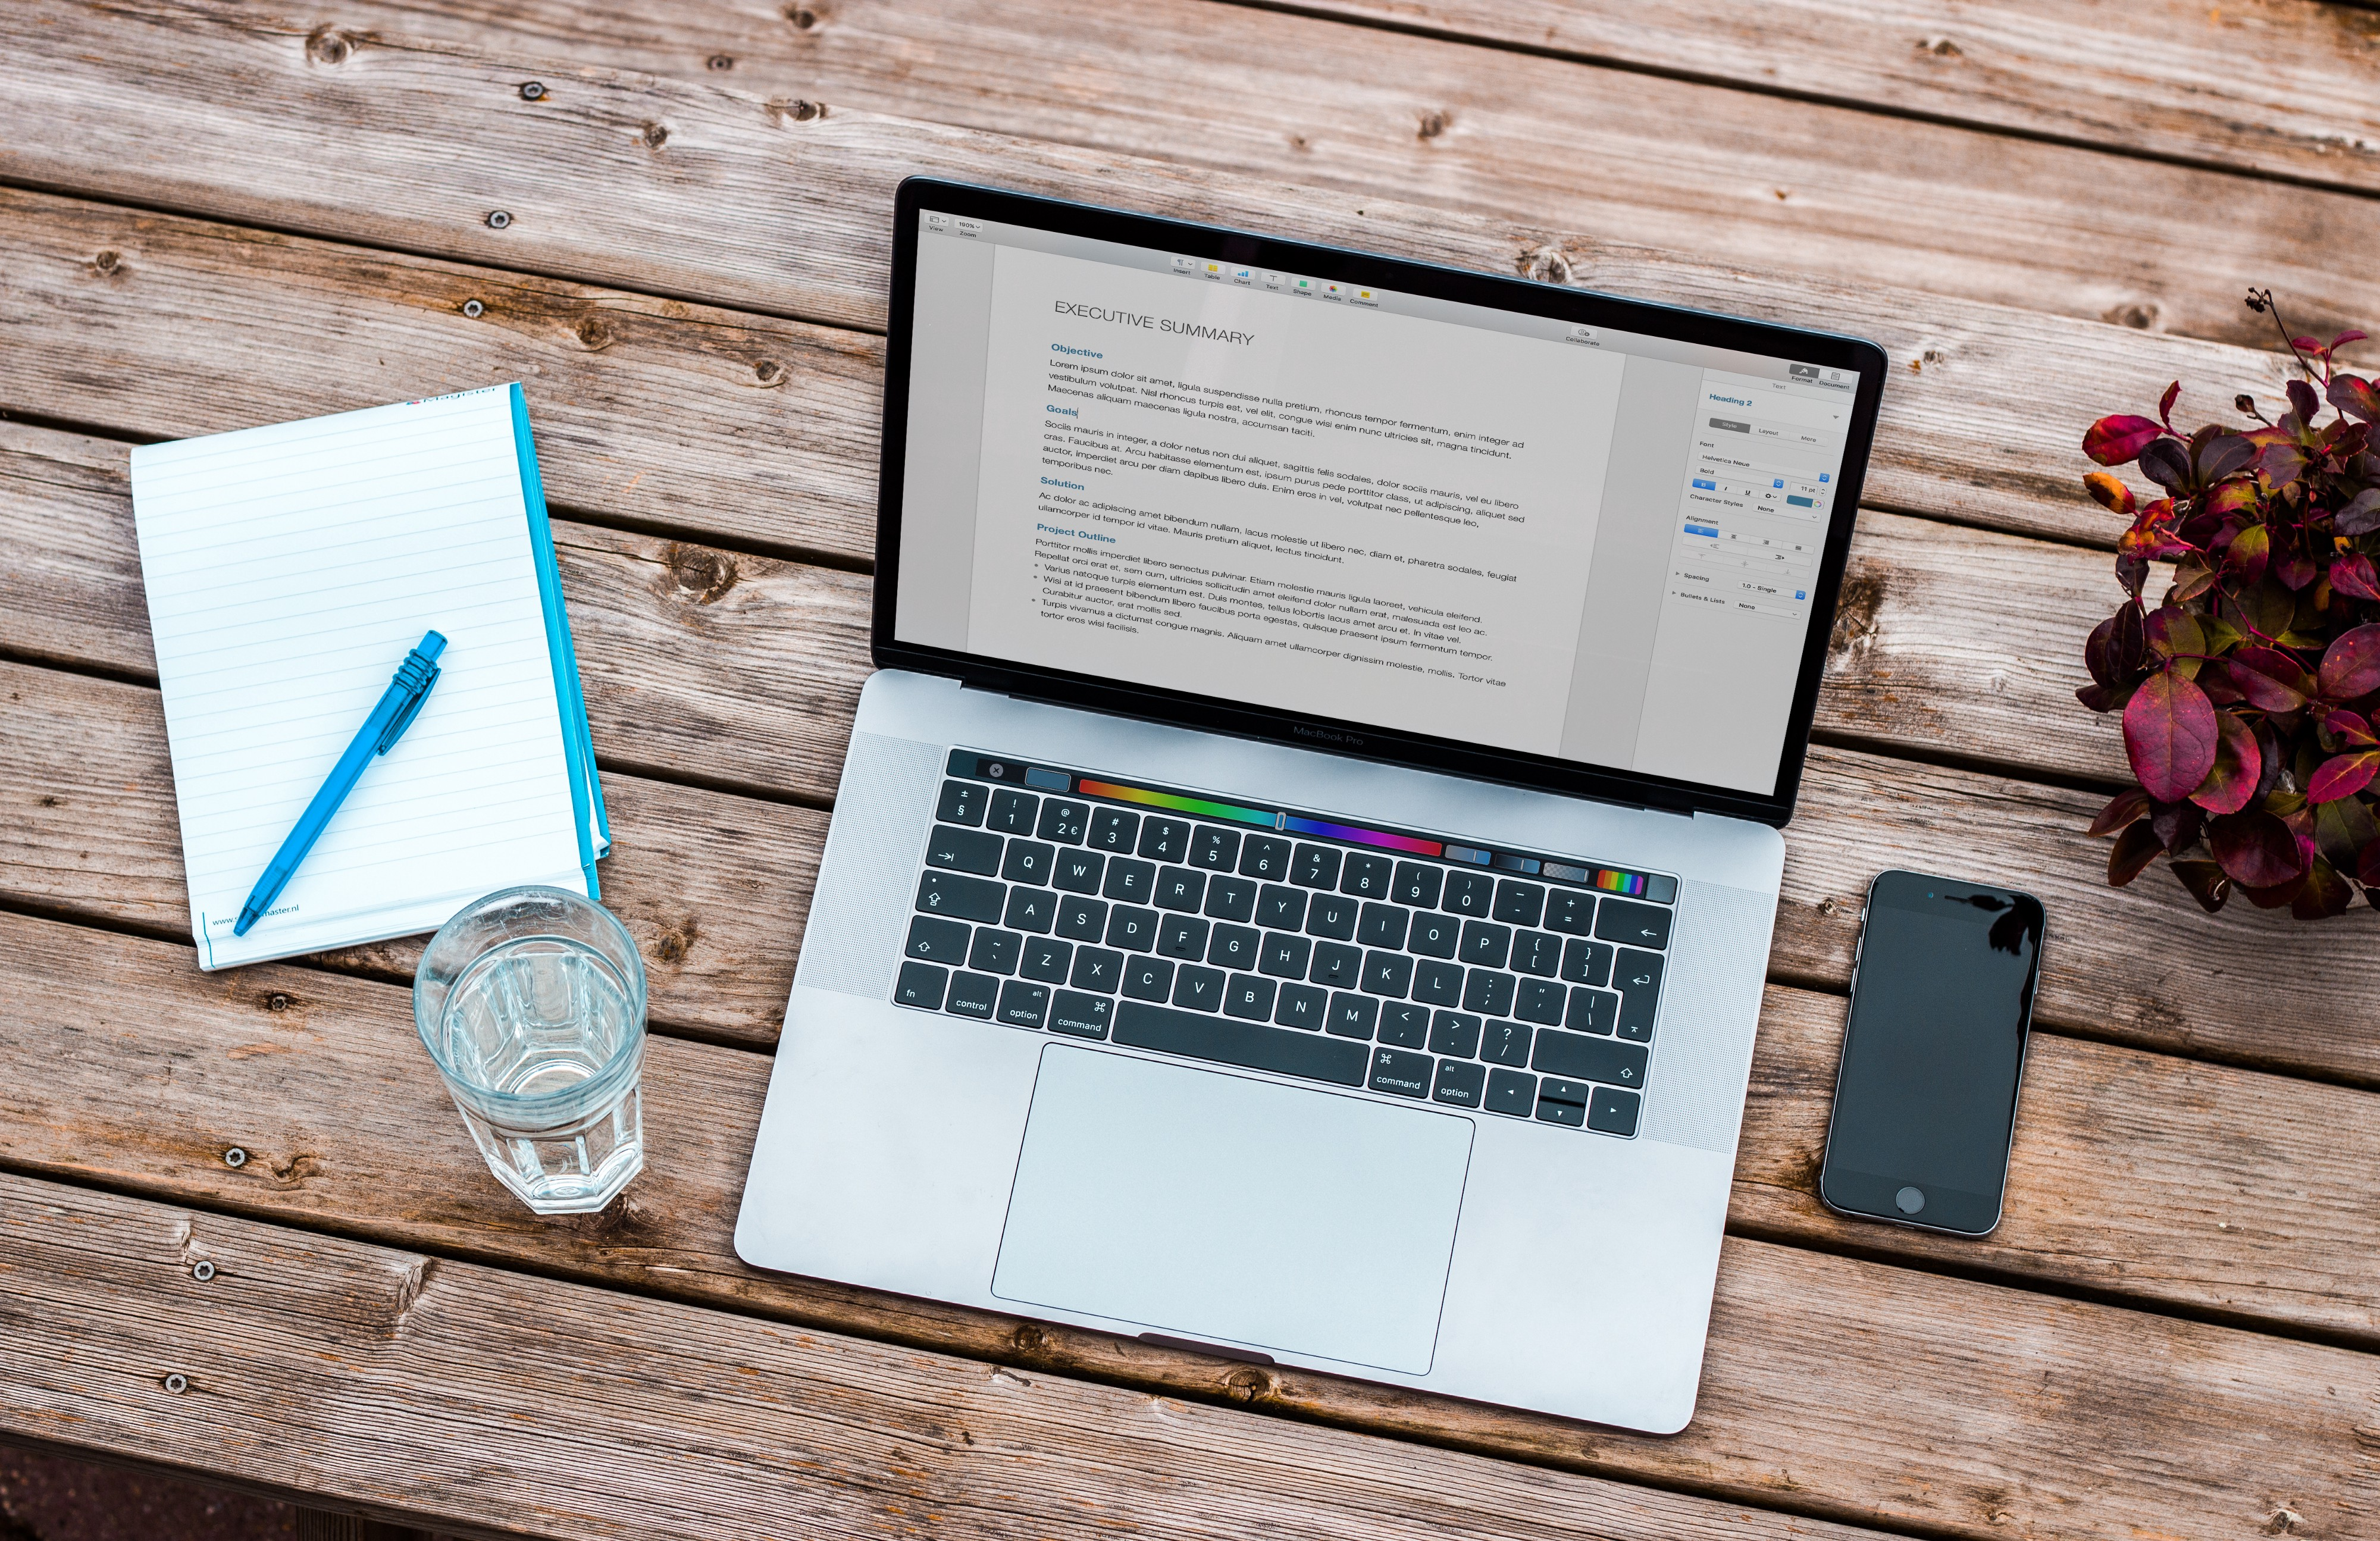 Macbook on wooden table showing resume on screen, plus notebook, pen, phone, plant and glass of water next to it